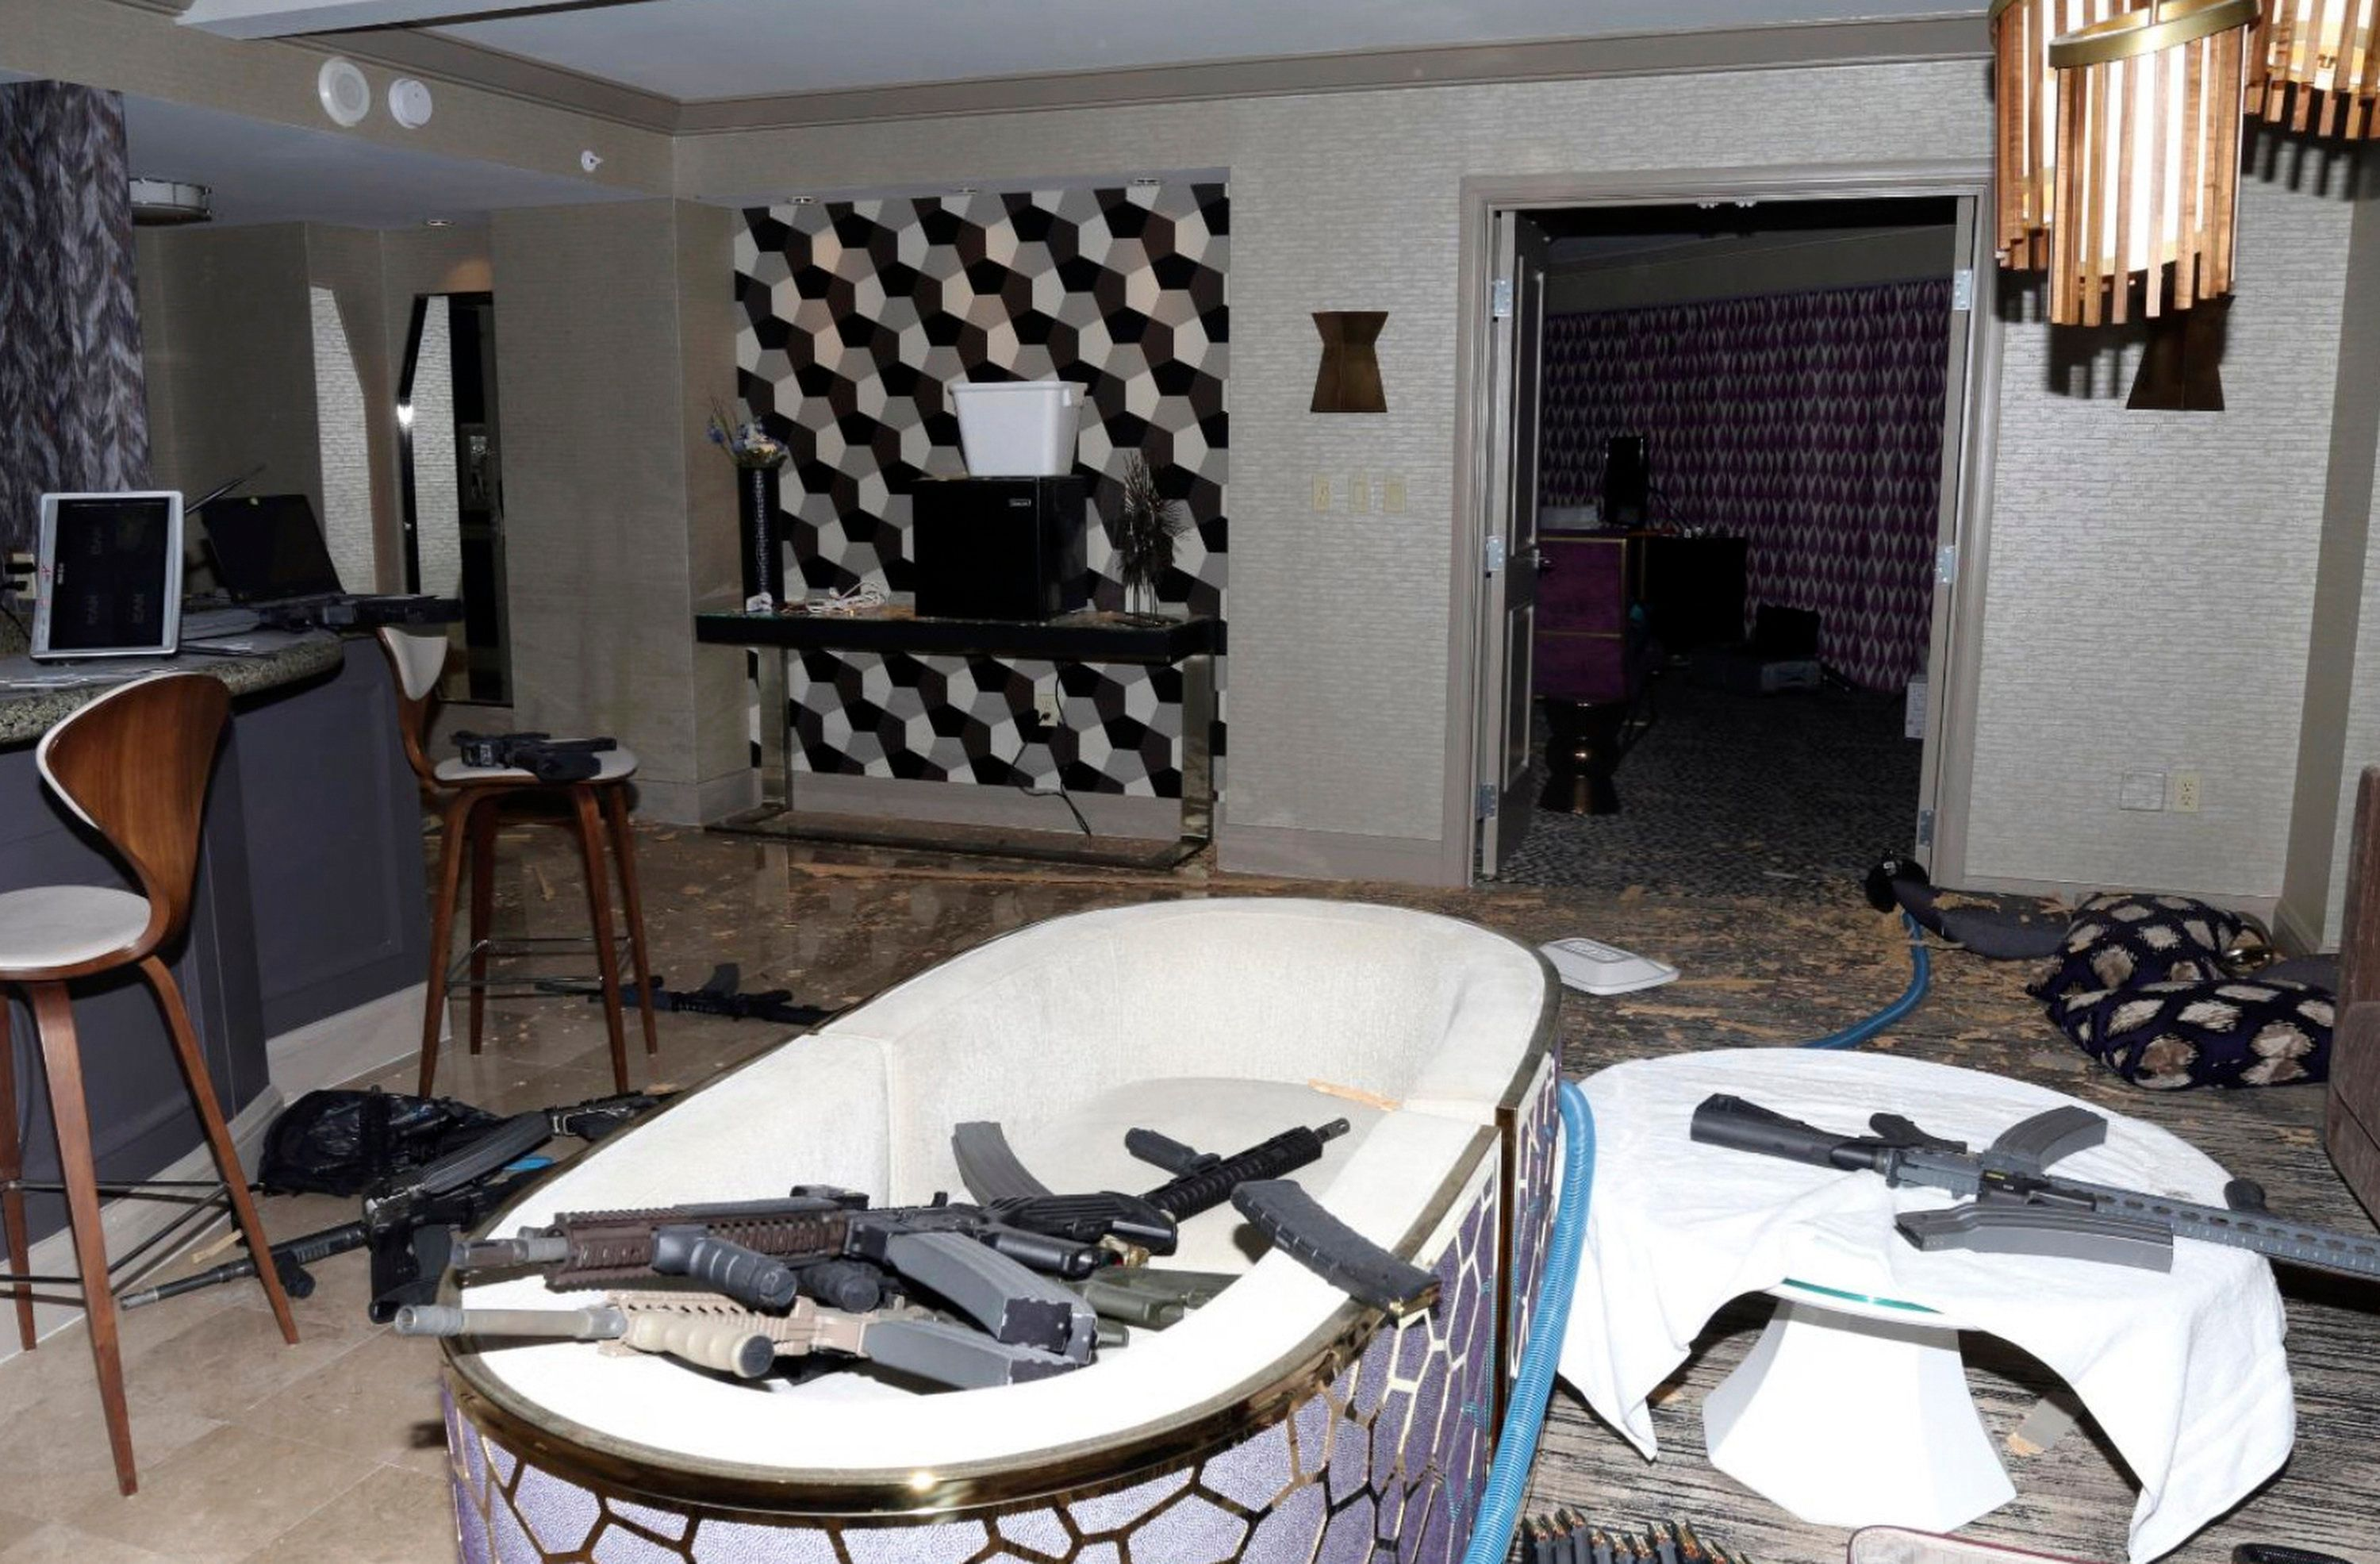 The interior of Stephen Paddock's hotel room of the Mandalay Bay hotel in Las Vegas is seen after the Oct. 1, 2017 mass shoot